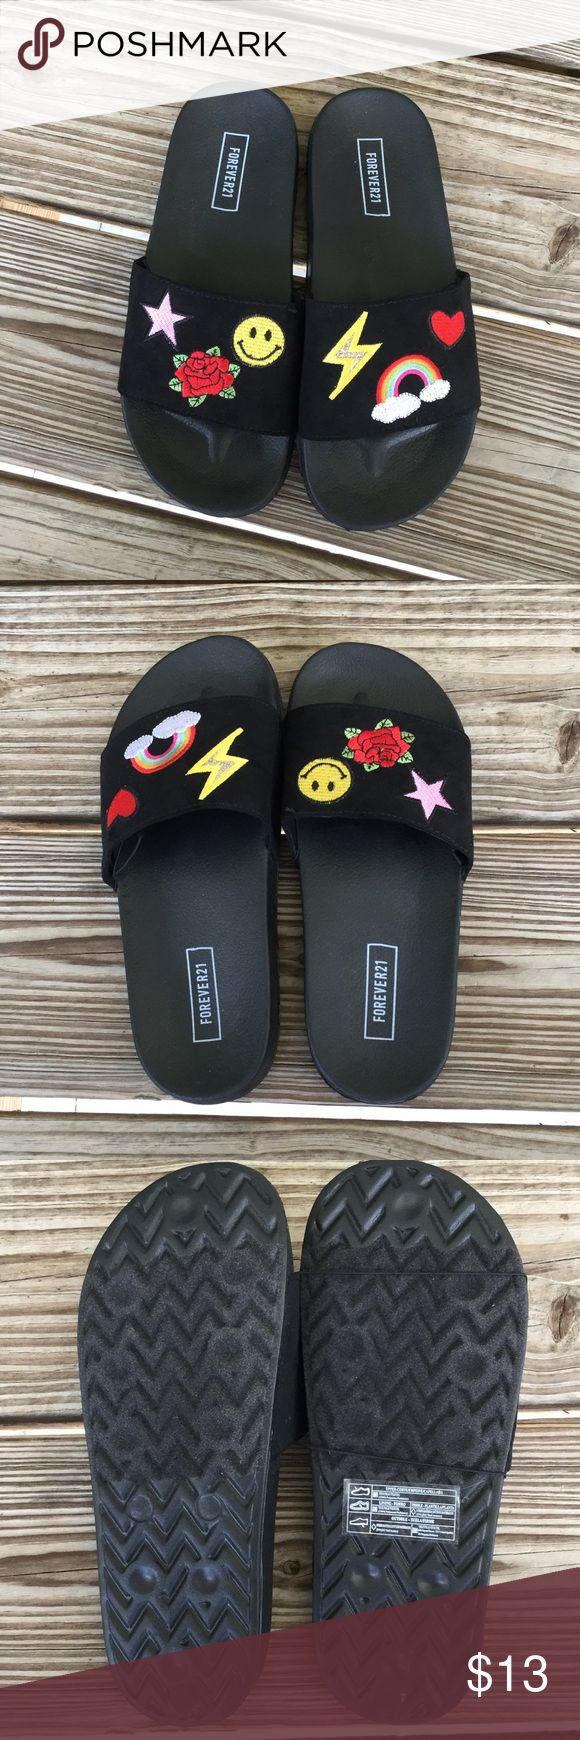 NWOT emoji slides bundle and save 10% These have never been worn they still have the elastic band. Size 5 1/2 Smoke free home Bundle and save Forever 21 Shoes Sandals